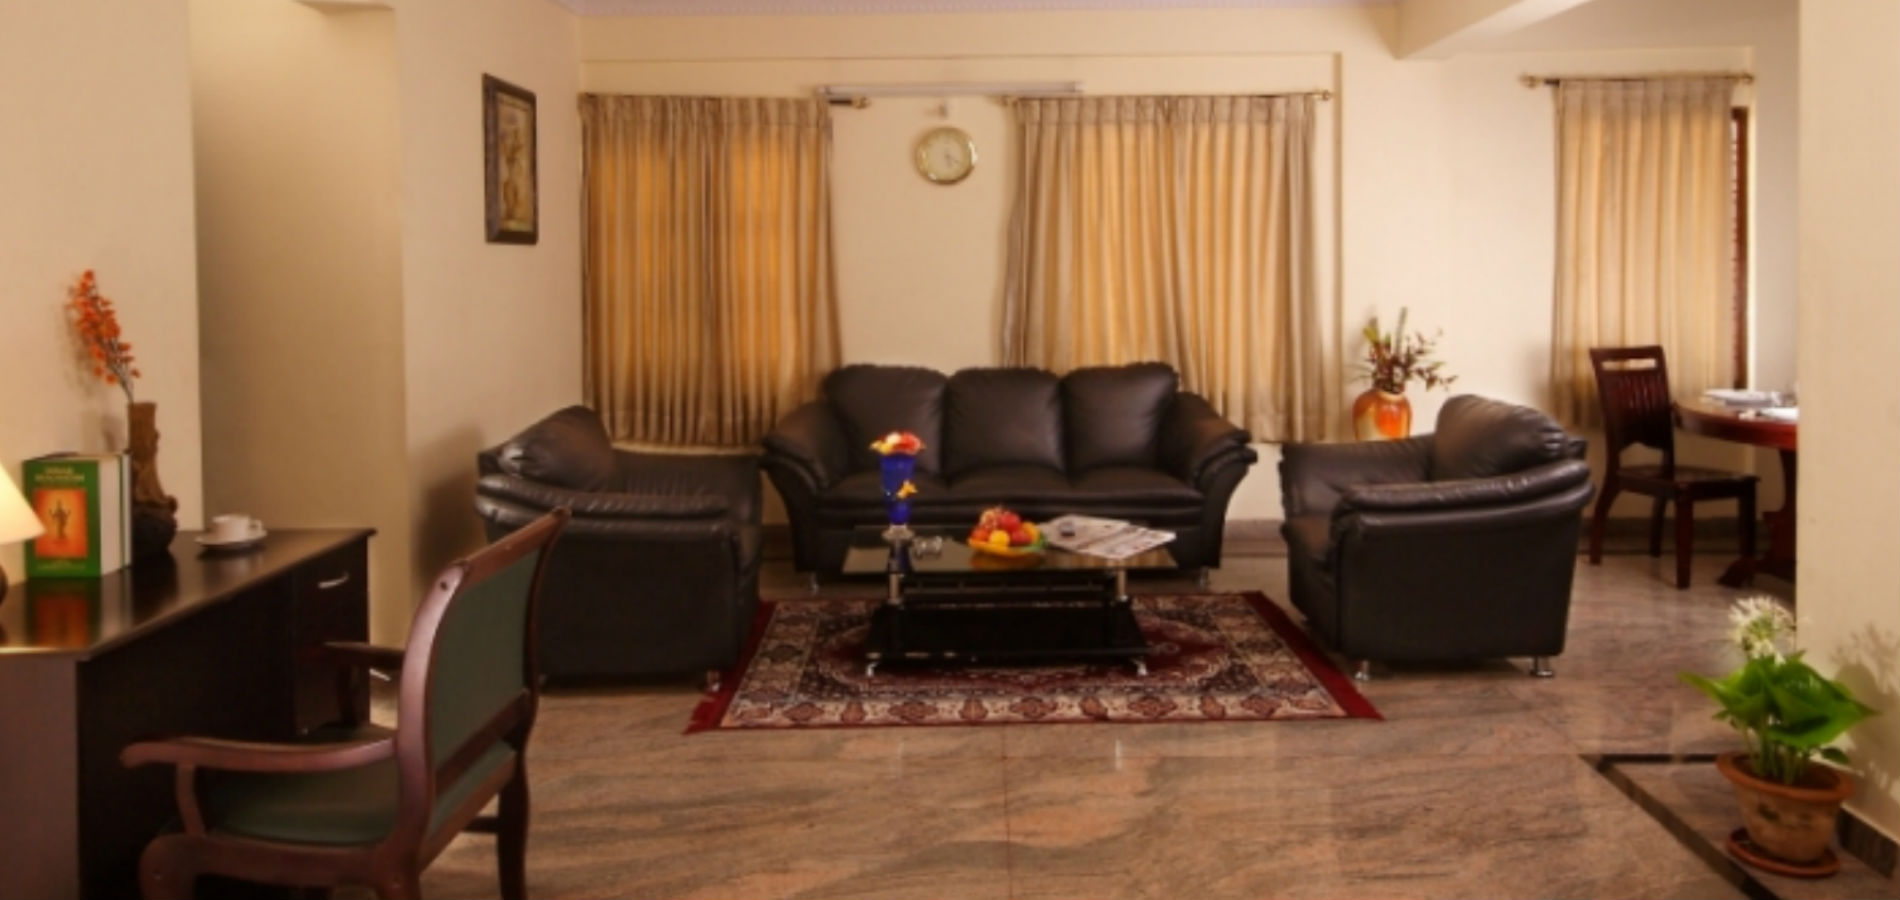 homestay living room